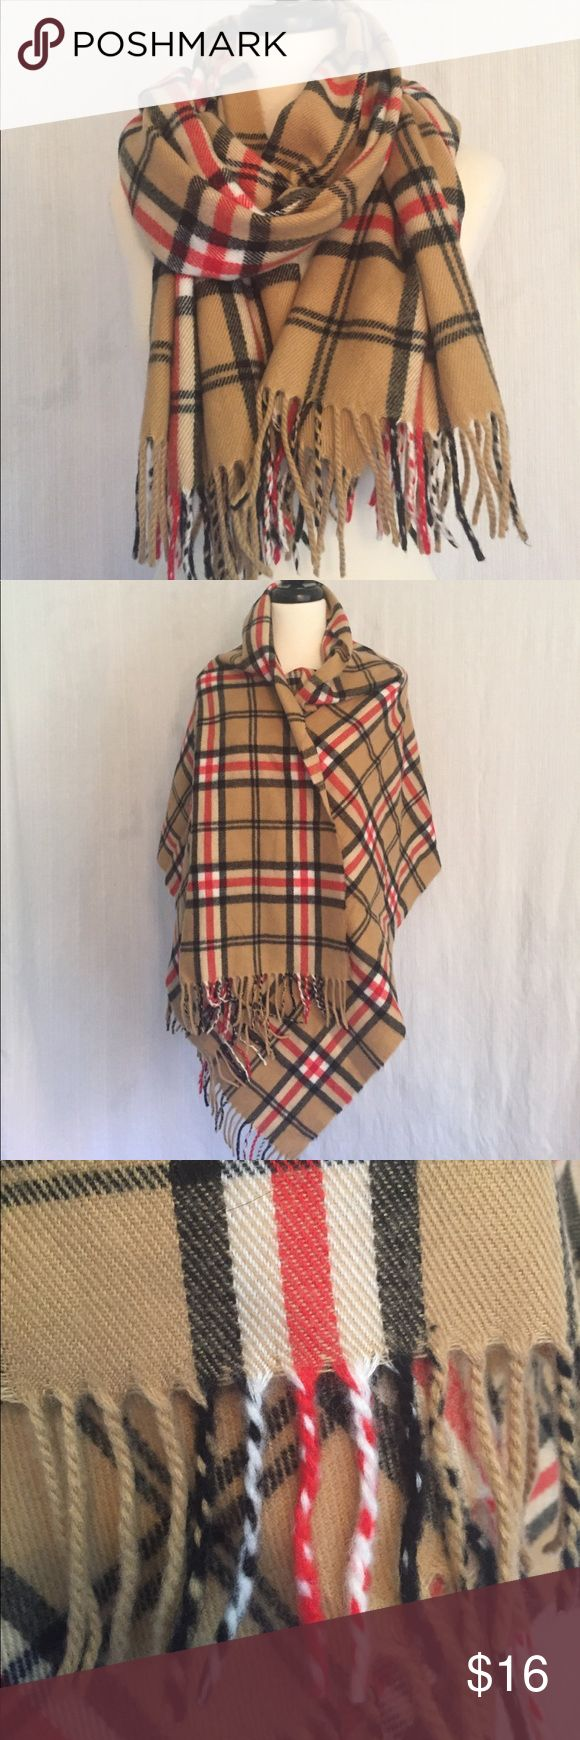 "Classic plaid blanket scarf 23.5"" X 68"" Classic plaid blanket scarf. Camel, red, white and black. 23.5"" X 68"". Comes without brand or care tags. I think it is synthetic-possibly acrylic. Very pretty and in excellent condition. Accessories Scarves & Wraps"